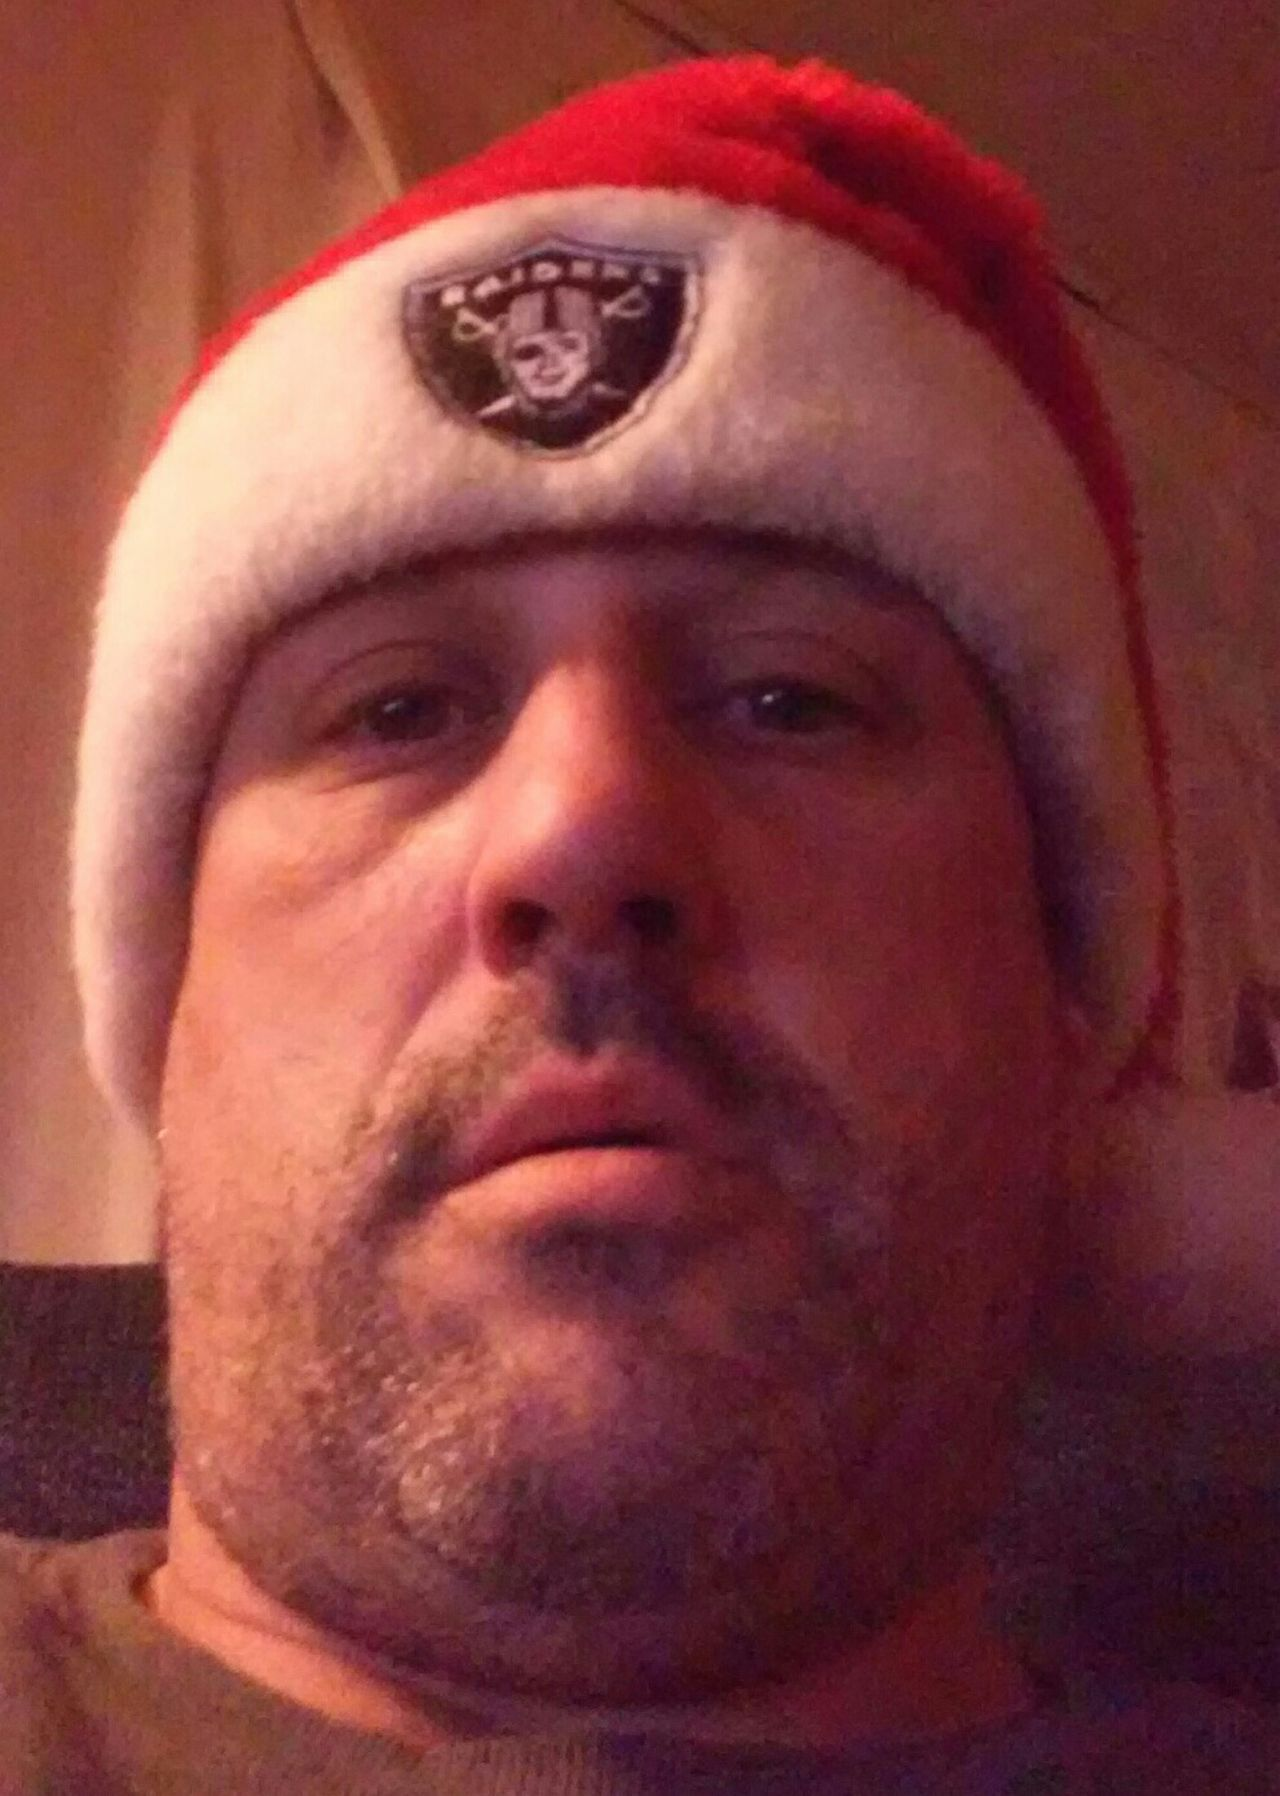 Santaclaus Santa Hat Oakland Raiders Christmastime yes santa loves the raiders too!!! Selfie That's Me